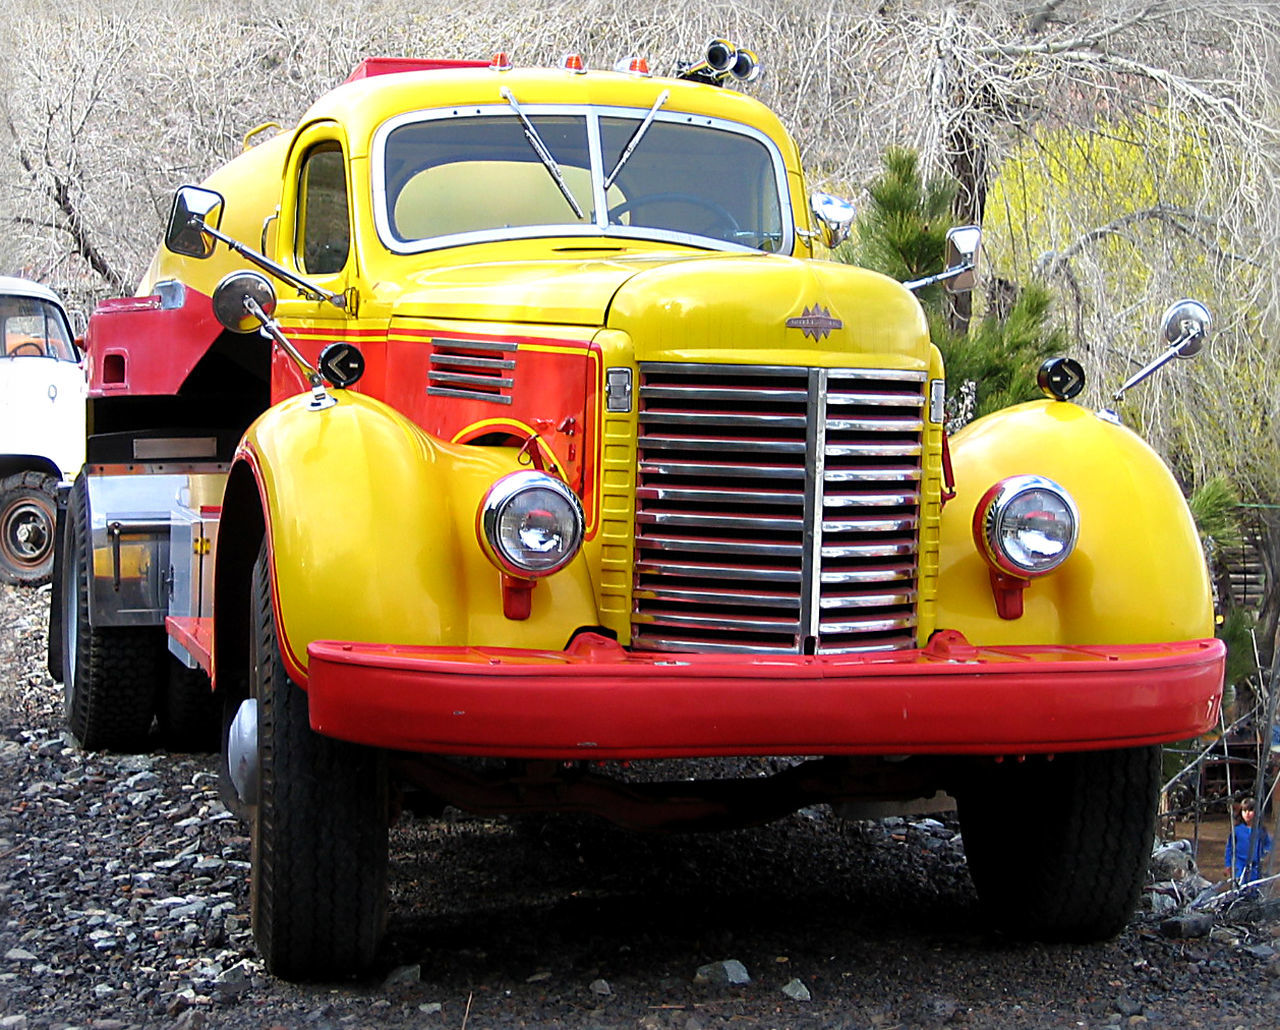 yellow, land vehicle, mode of transport, headlight, transportation, retro styled, outdoors, day, golden color, no people